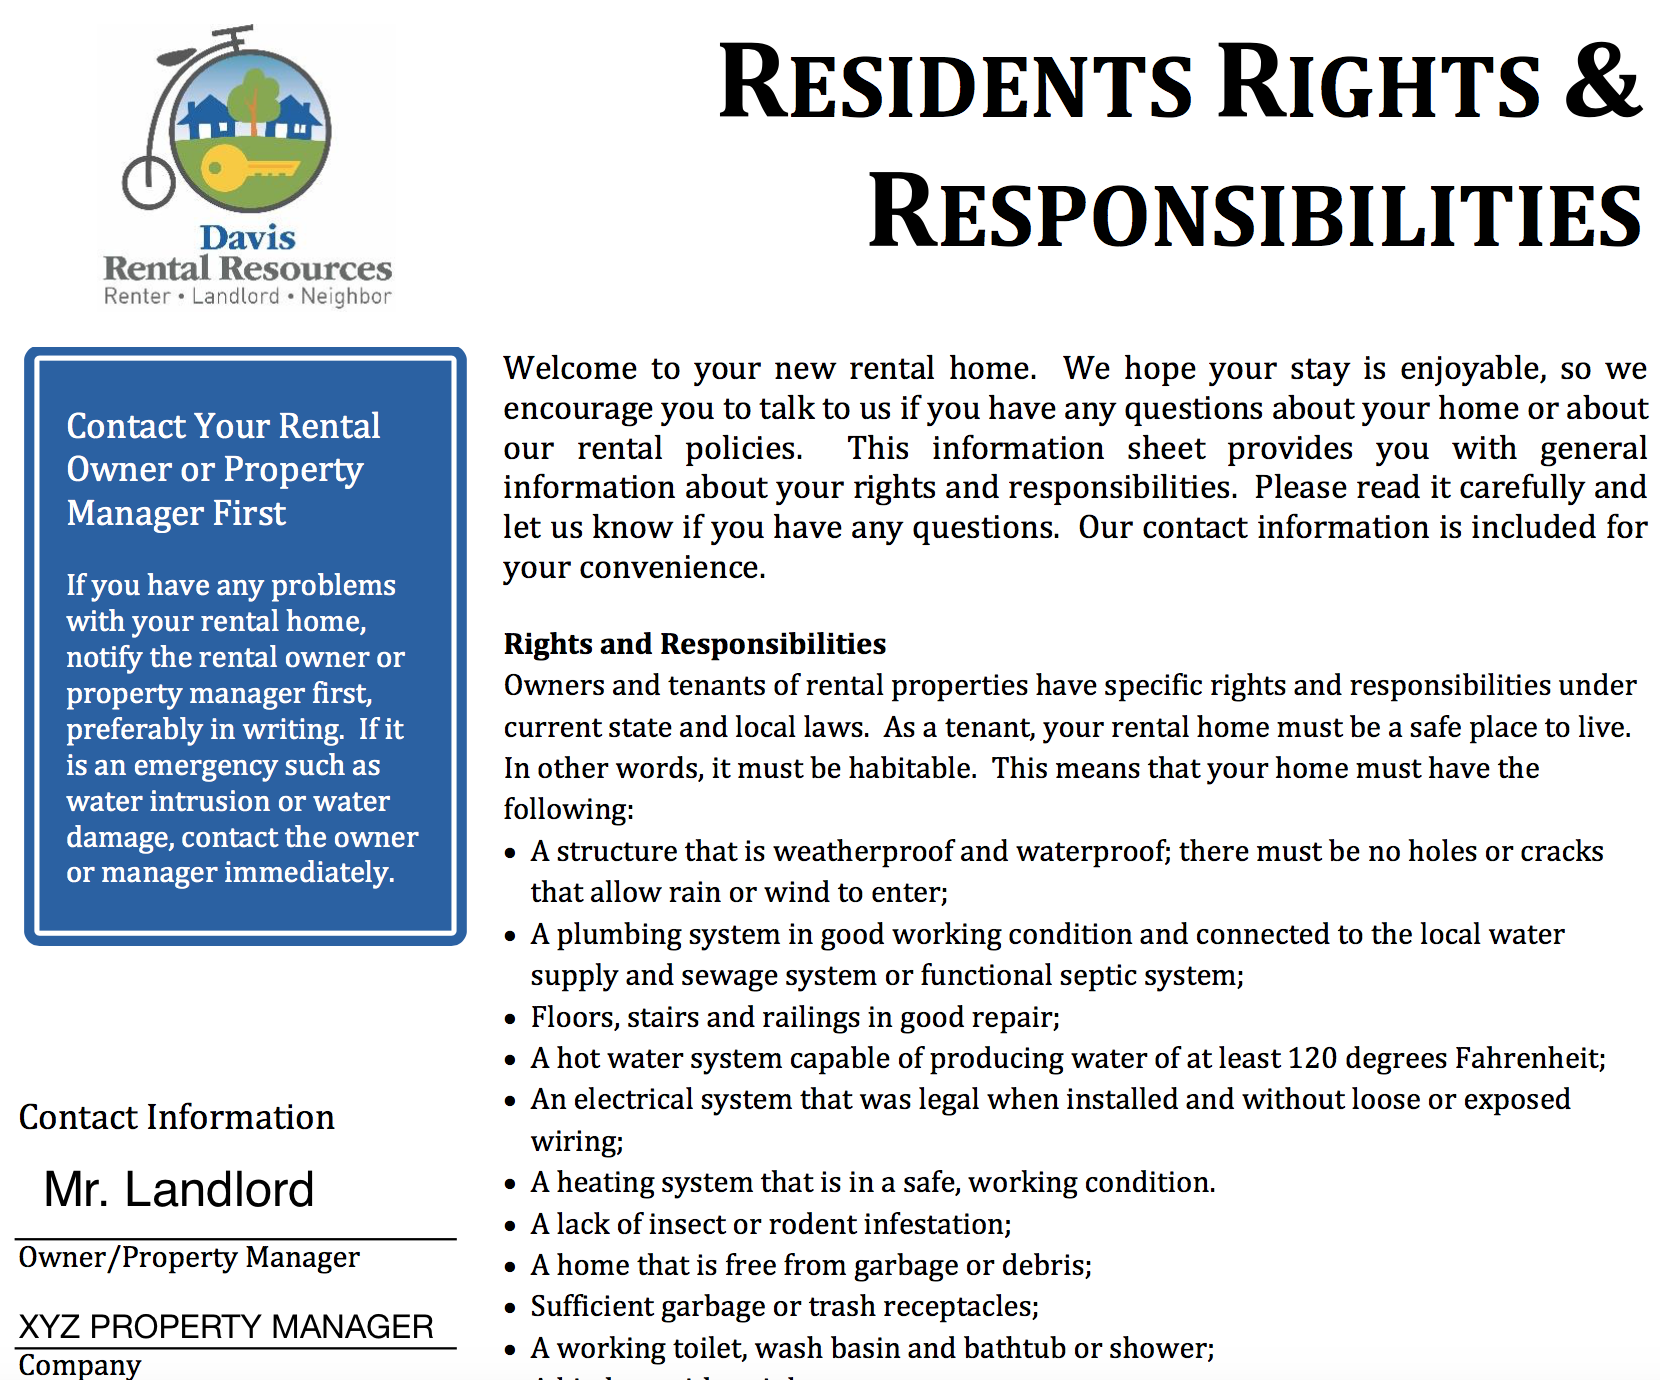 EXAMPLE - Request this from your landlord before signing a lease.